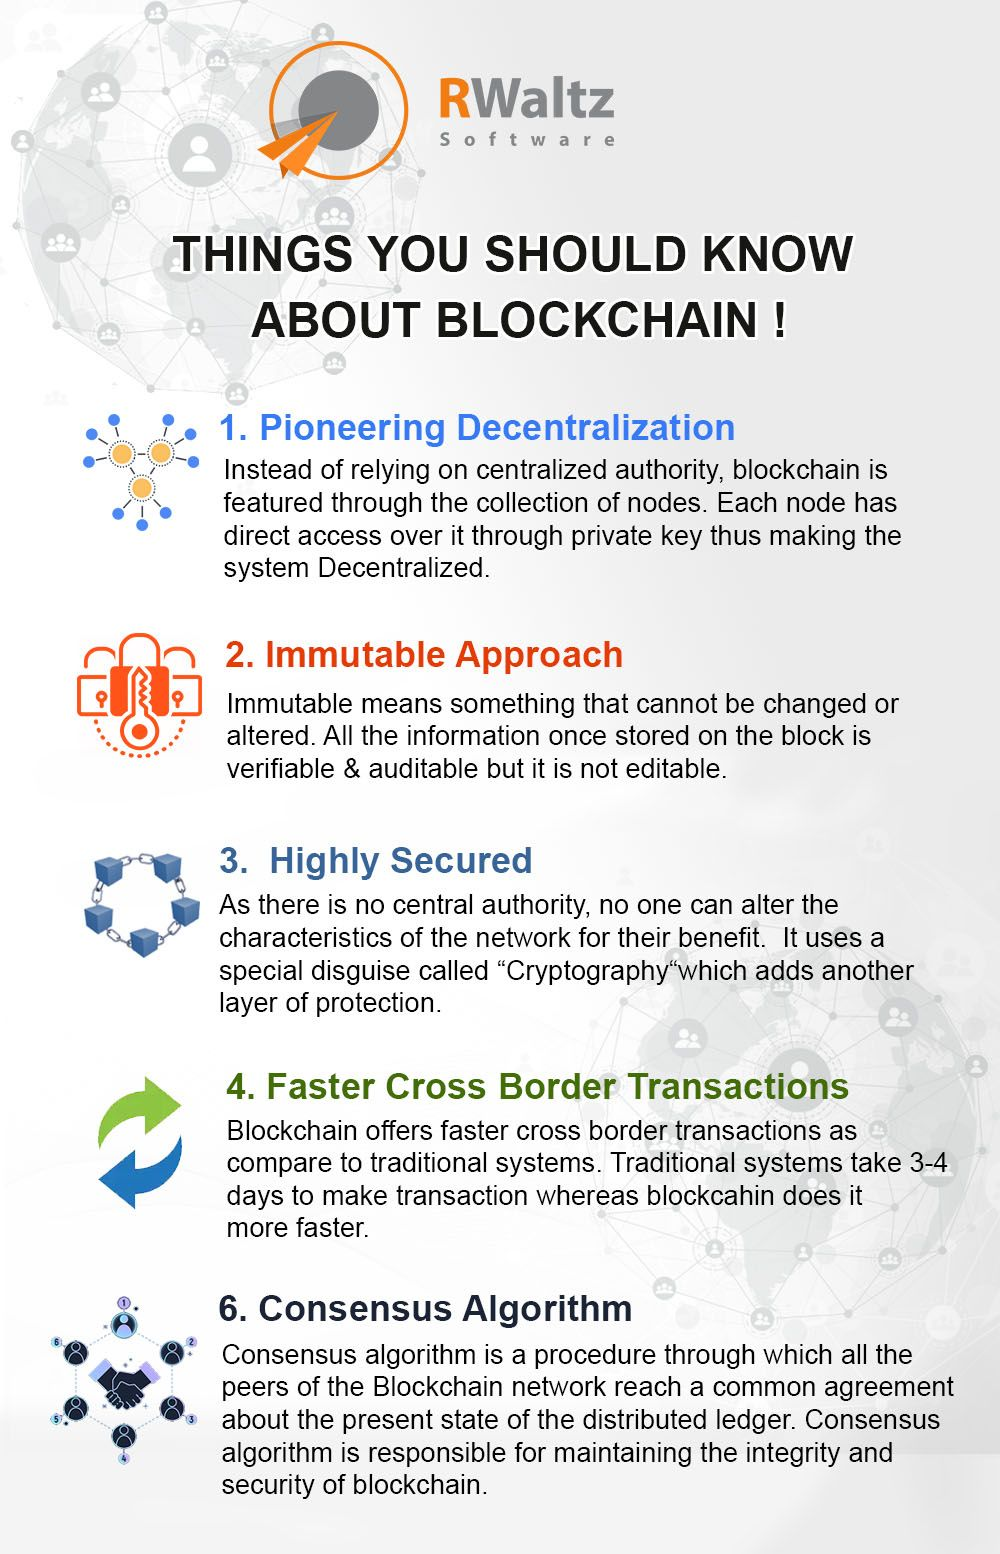 Things you should know about Blockchain!